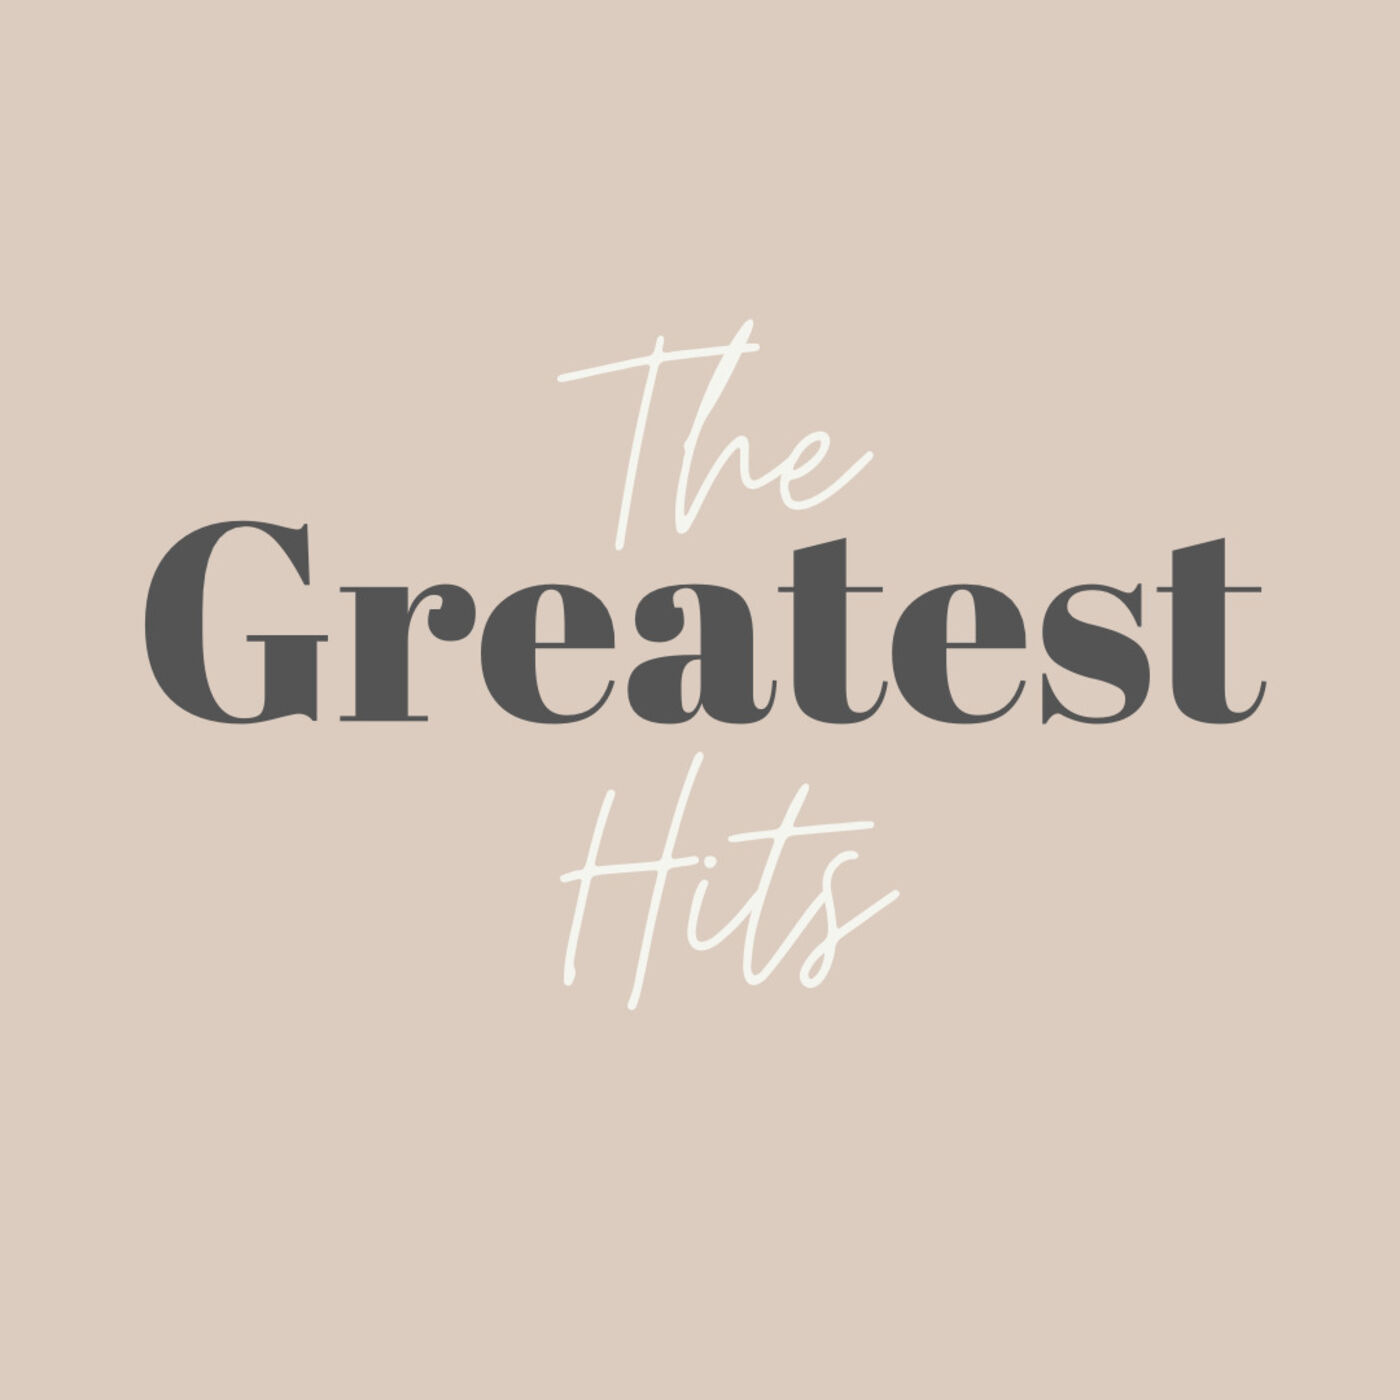 The Greatest Hits-Week 2